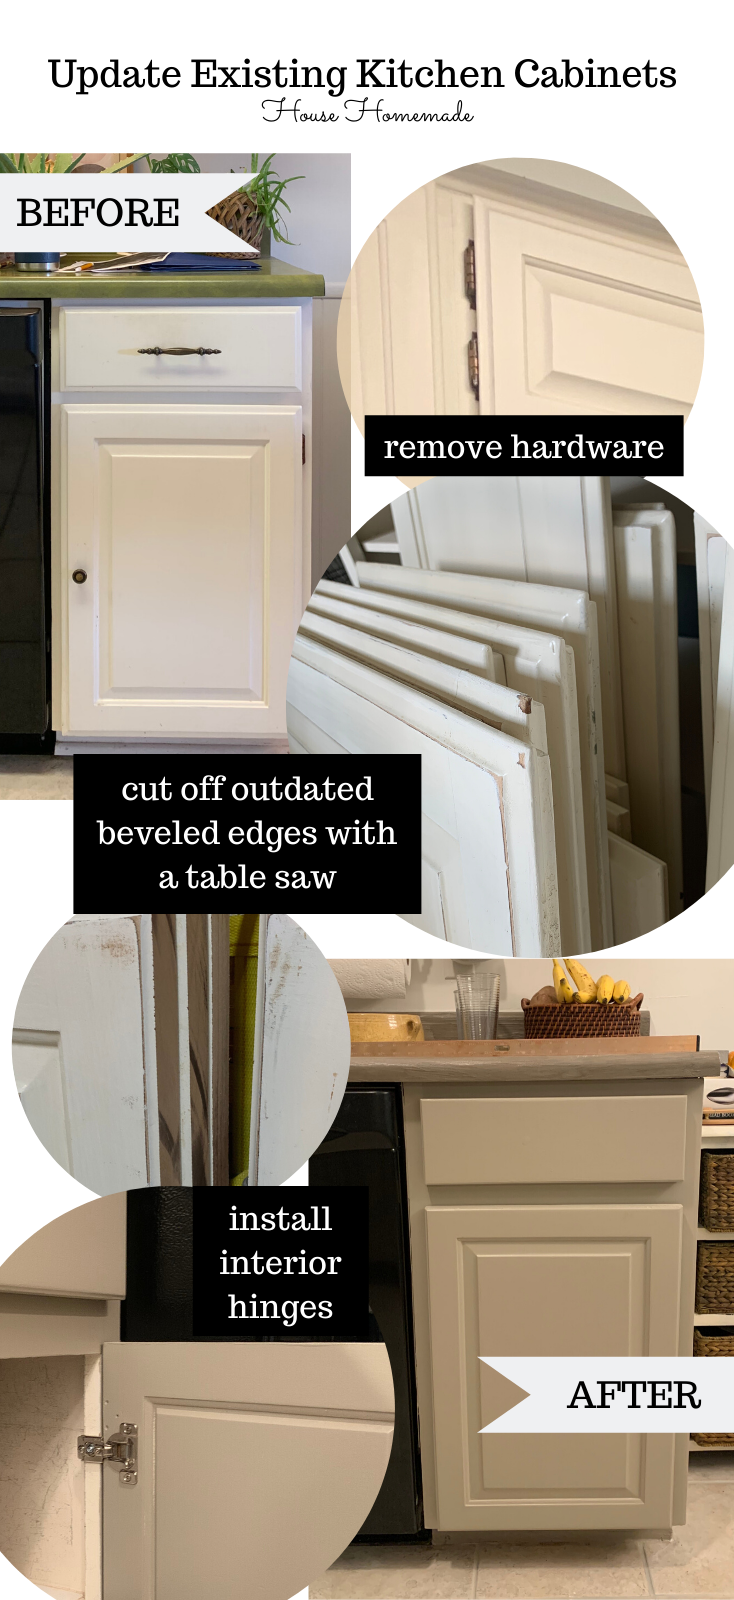 Budget Kitchen Makeover Converting Cabinet Doors From Exposed Hinges To Concealed House Homemade